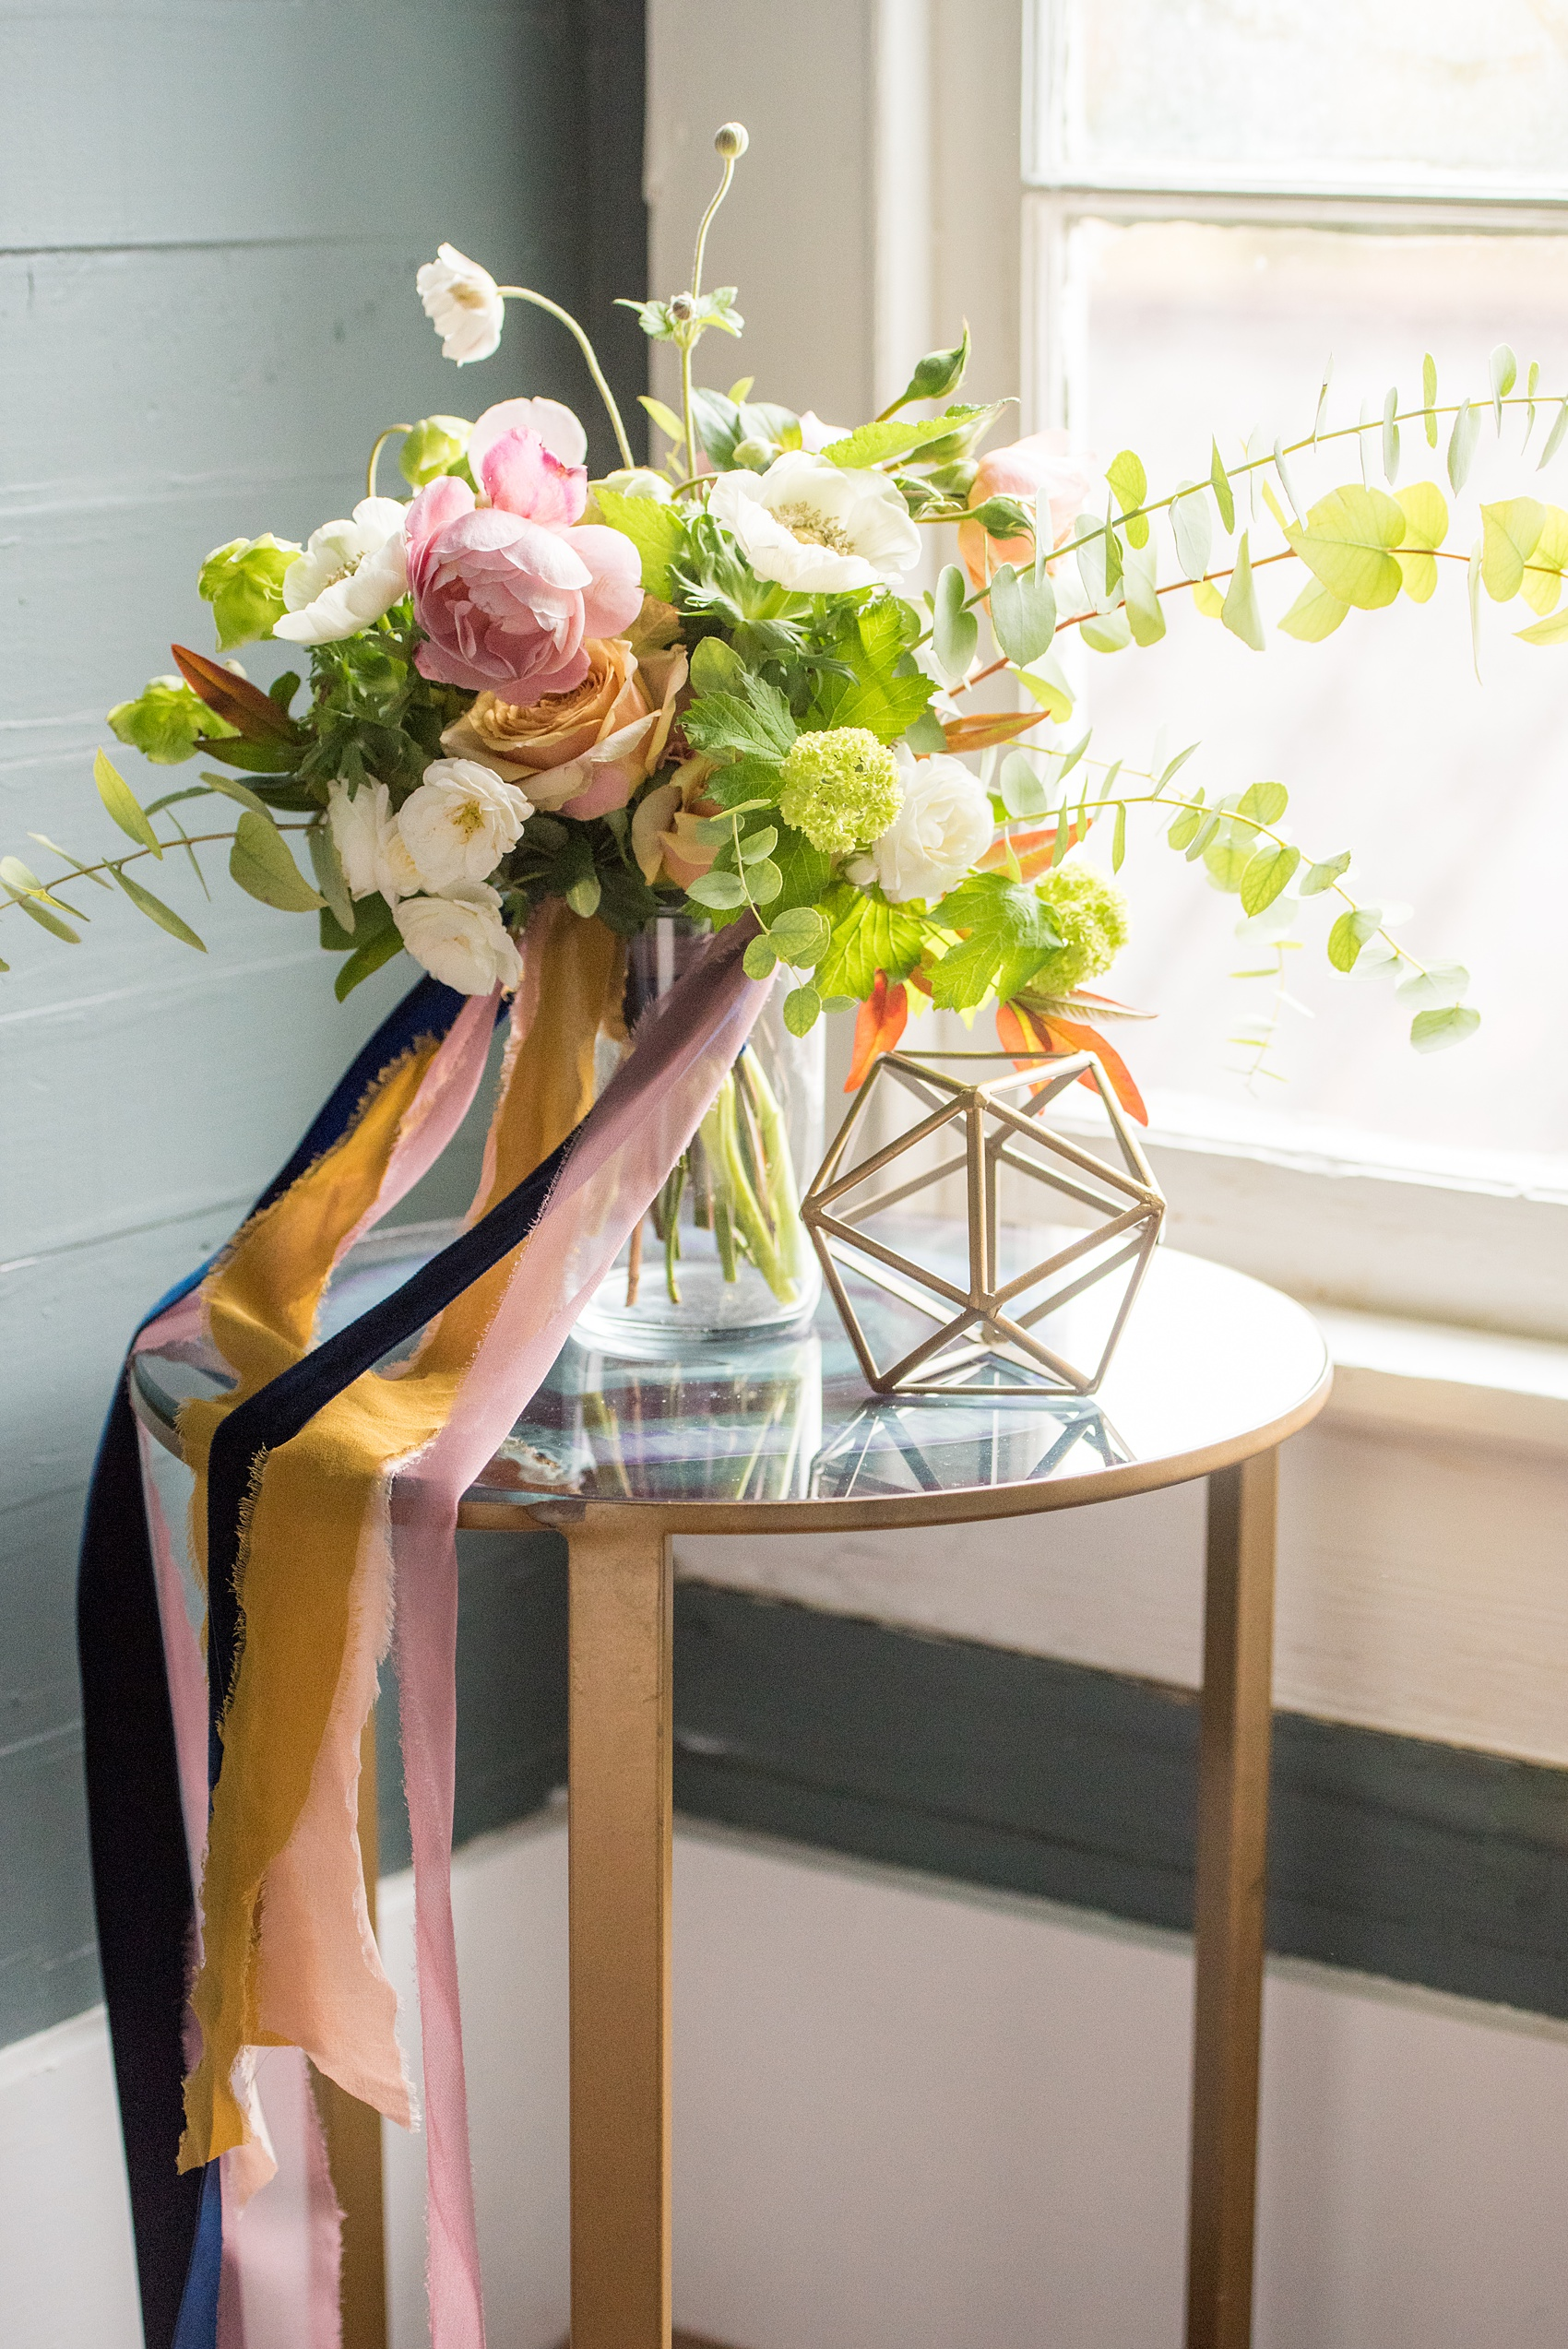 Mikkel Paige Photography photos from a wedding at Leslie-Alford Mims House in North Carolina. Picture of the bride's colorful fall bouquet, tied with silk and velvet ribbons by Caroline Ruth Designs and Mad Dash Weddings.